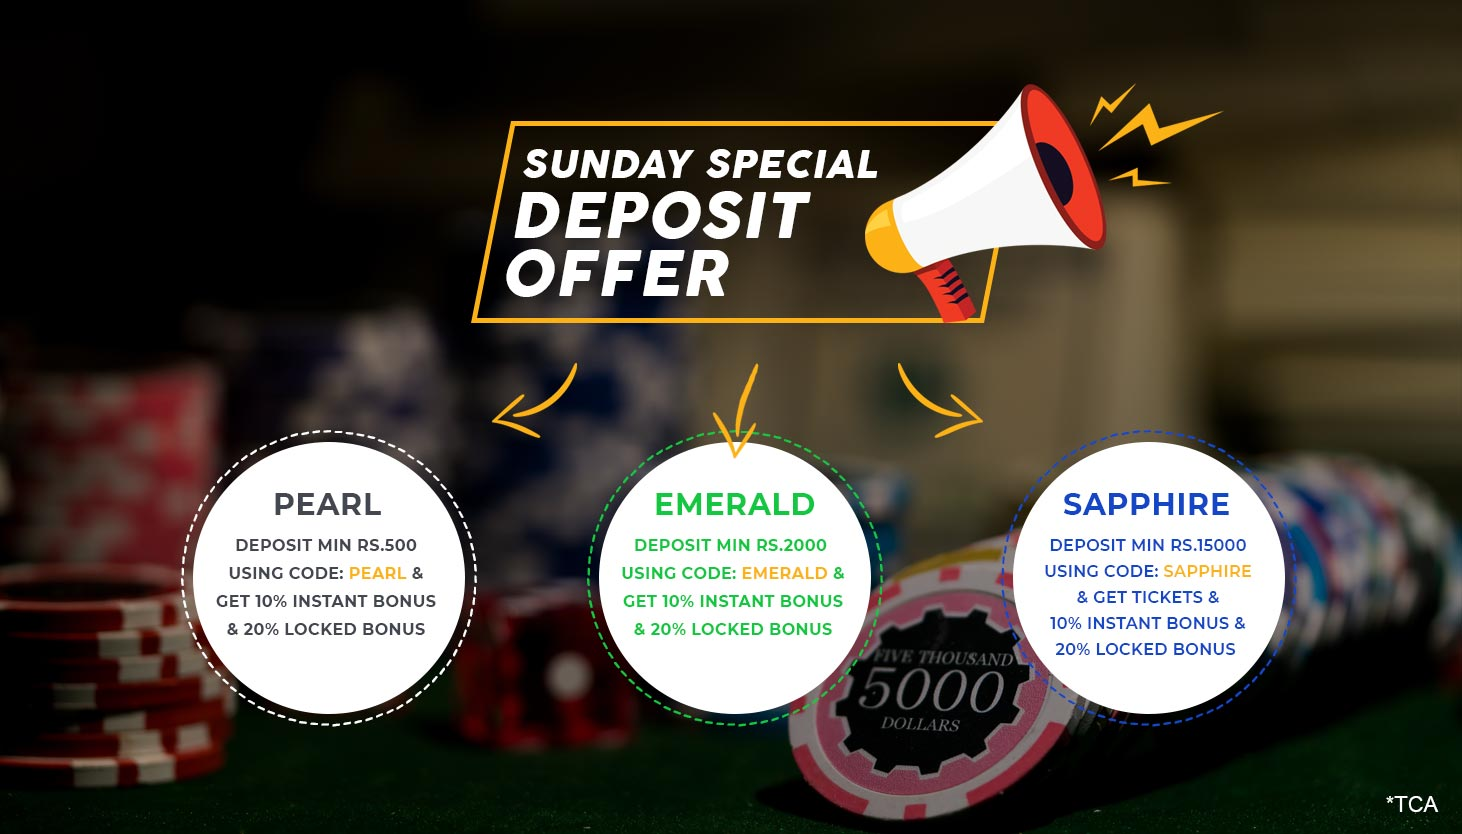 Saturday Special deposit offer